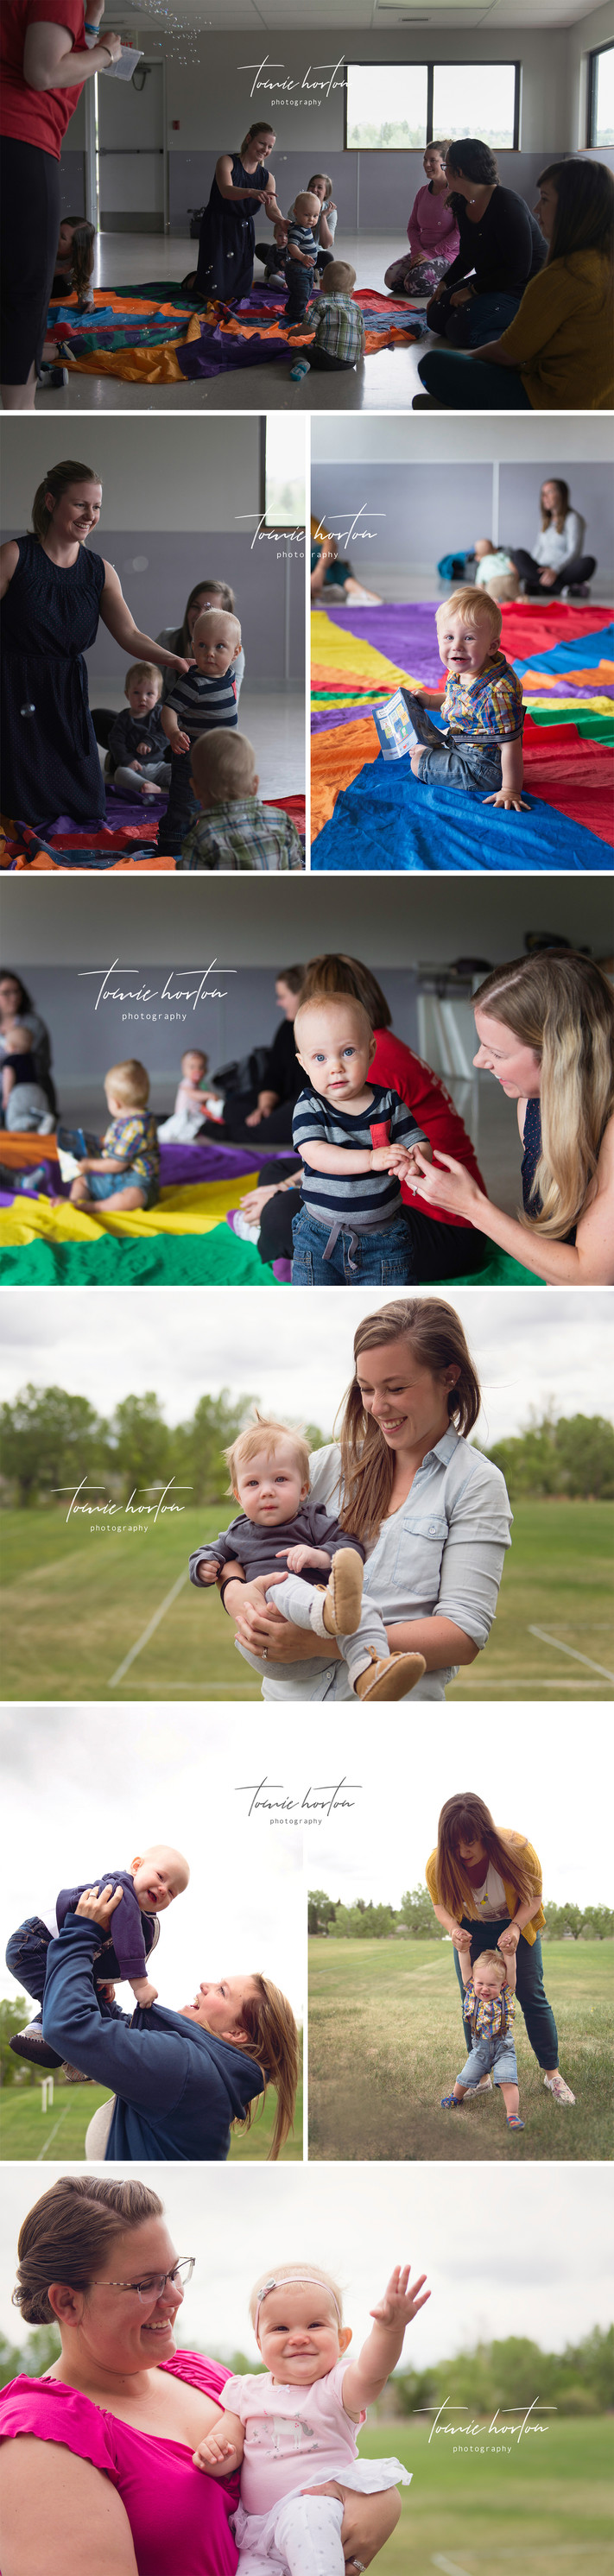 Calgary event photographer - Mommy Connections